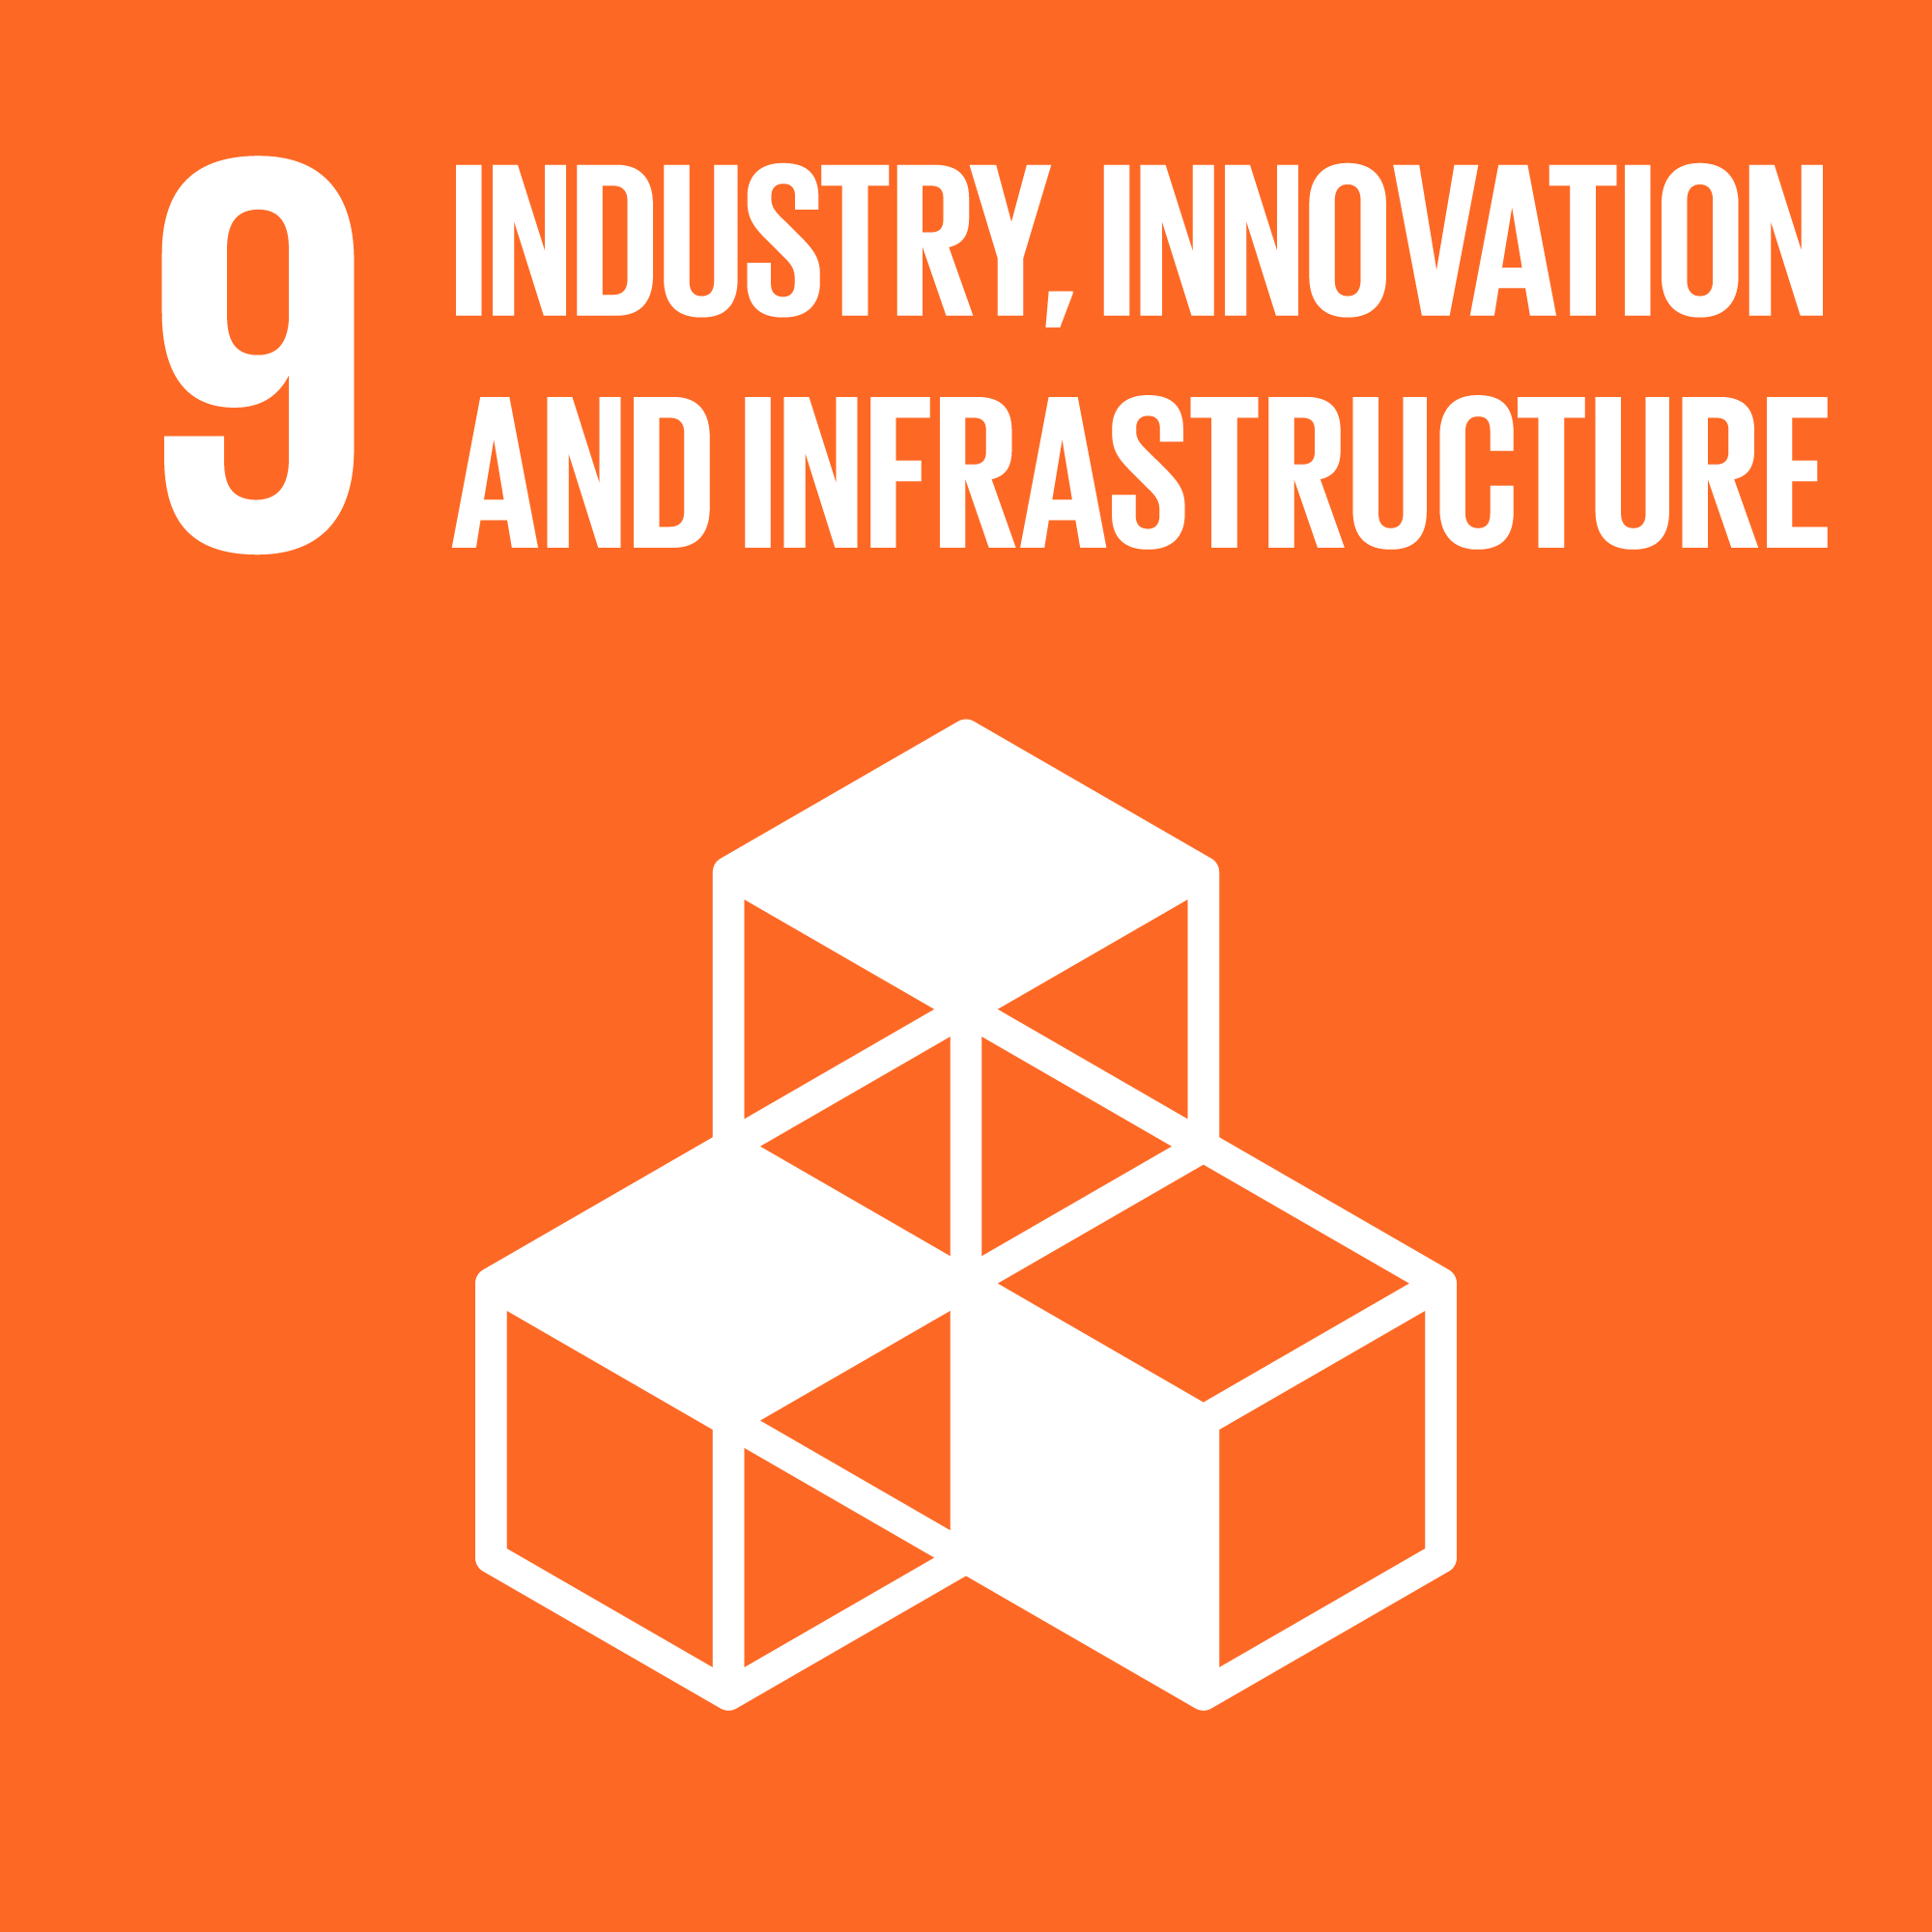 Sustainable Development Goal 9: Innovation